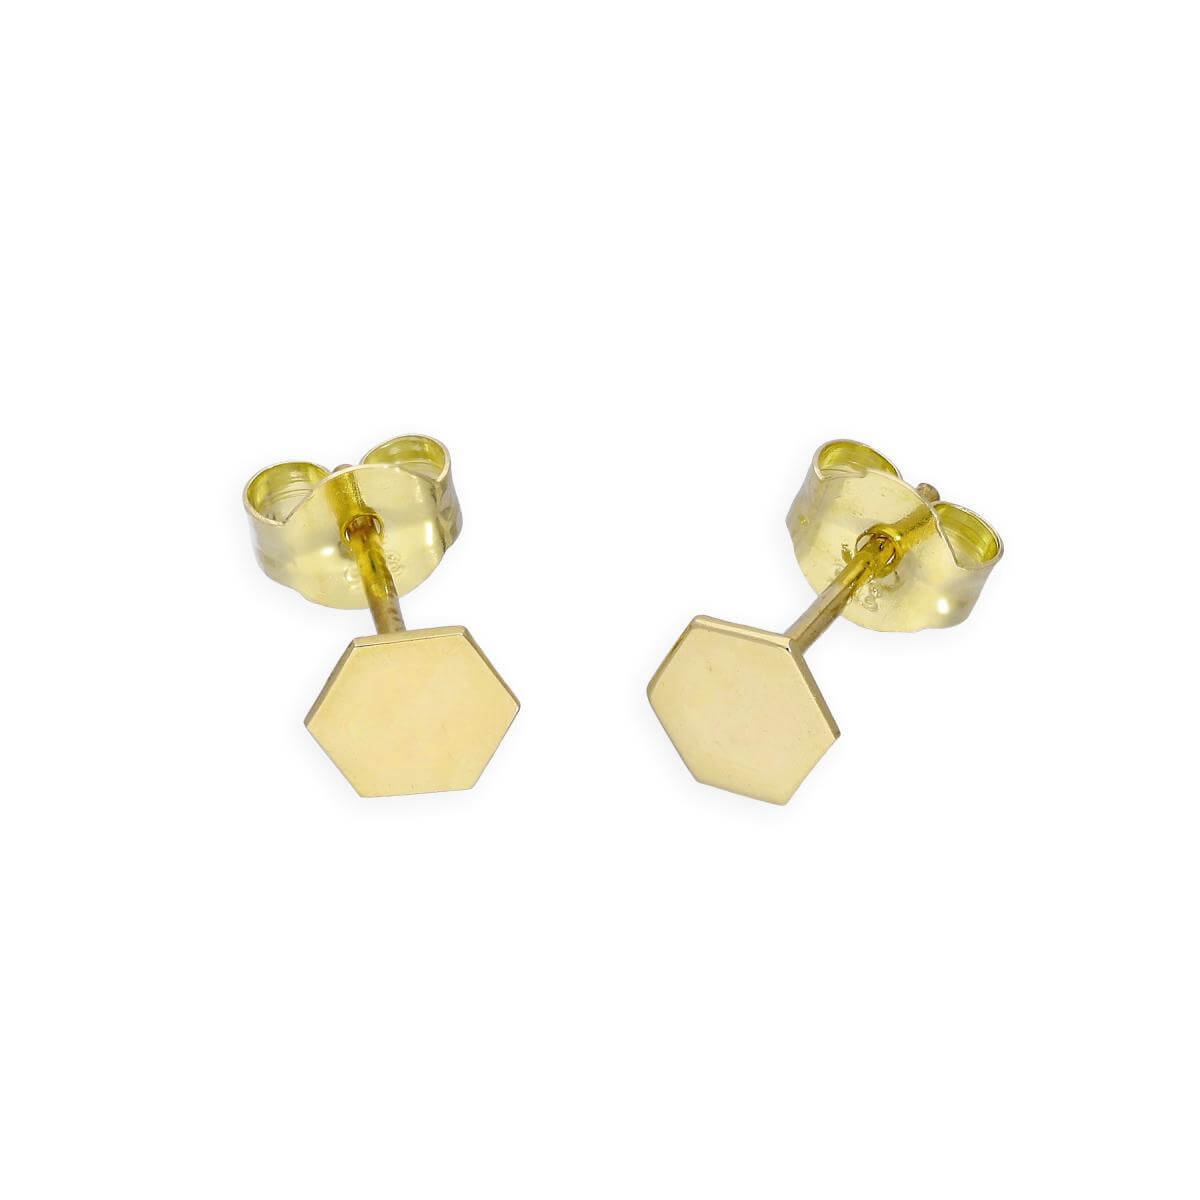 9ct Gold 4mm Hexagon Stud Earrings